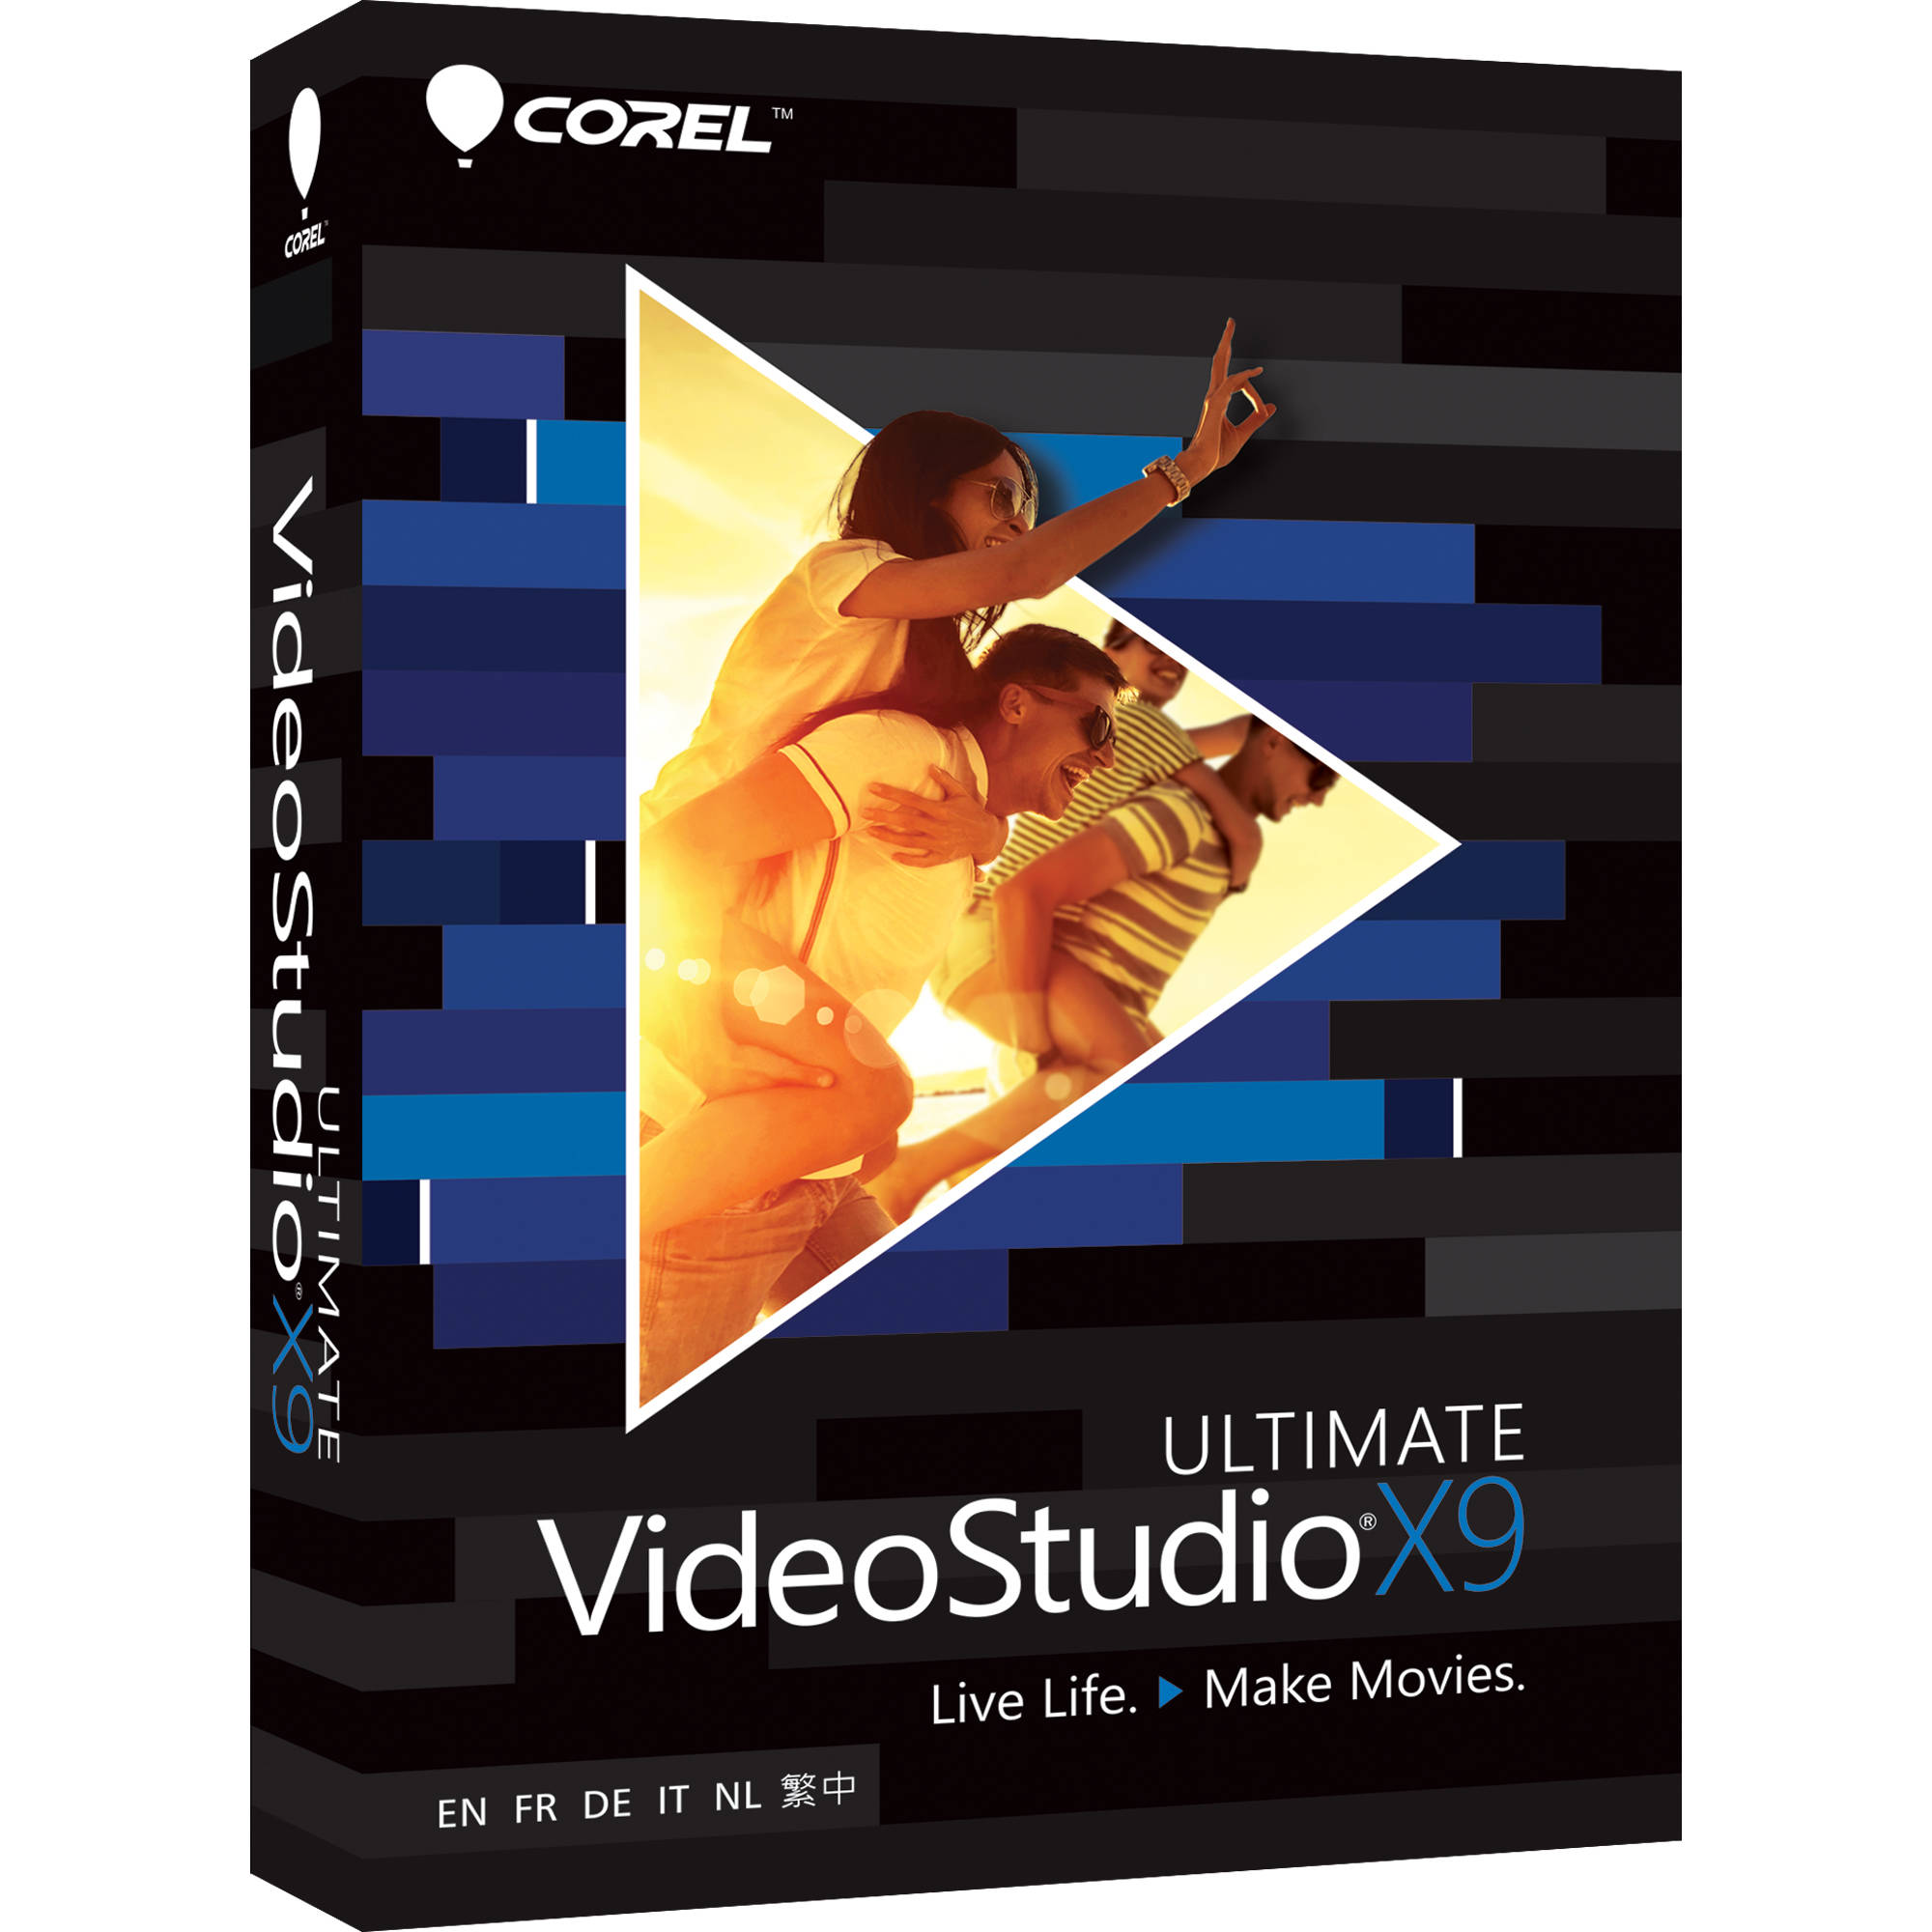 corel video studio templates download - corel videostudio x9 ultimate boxed vsprx9ulmlmbam b h photo